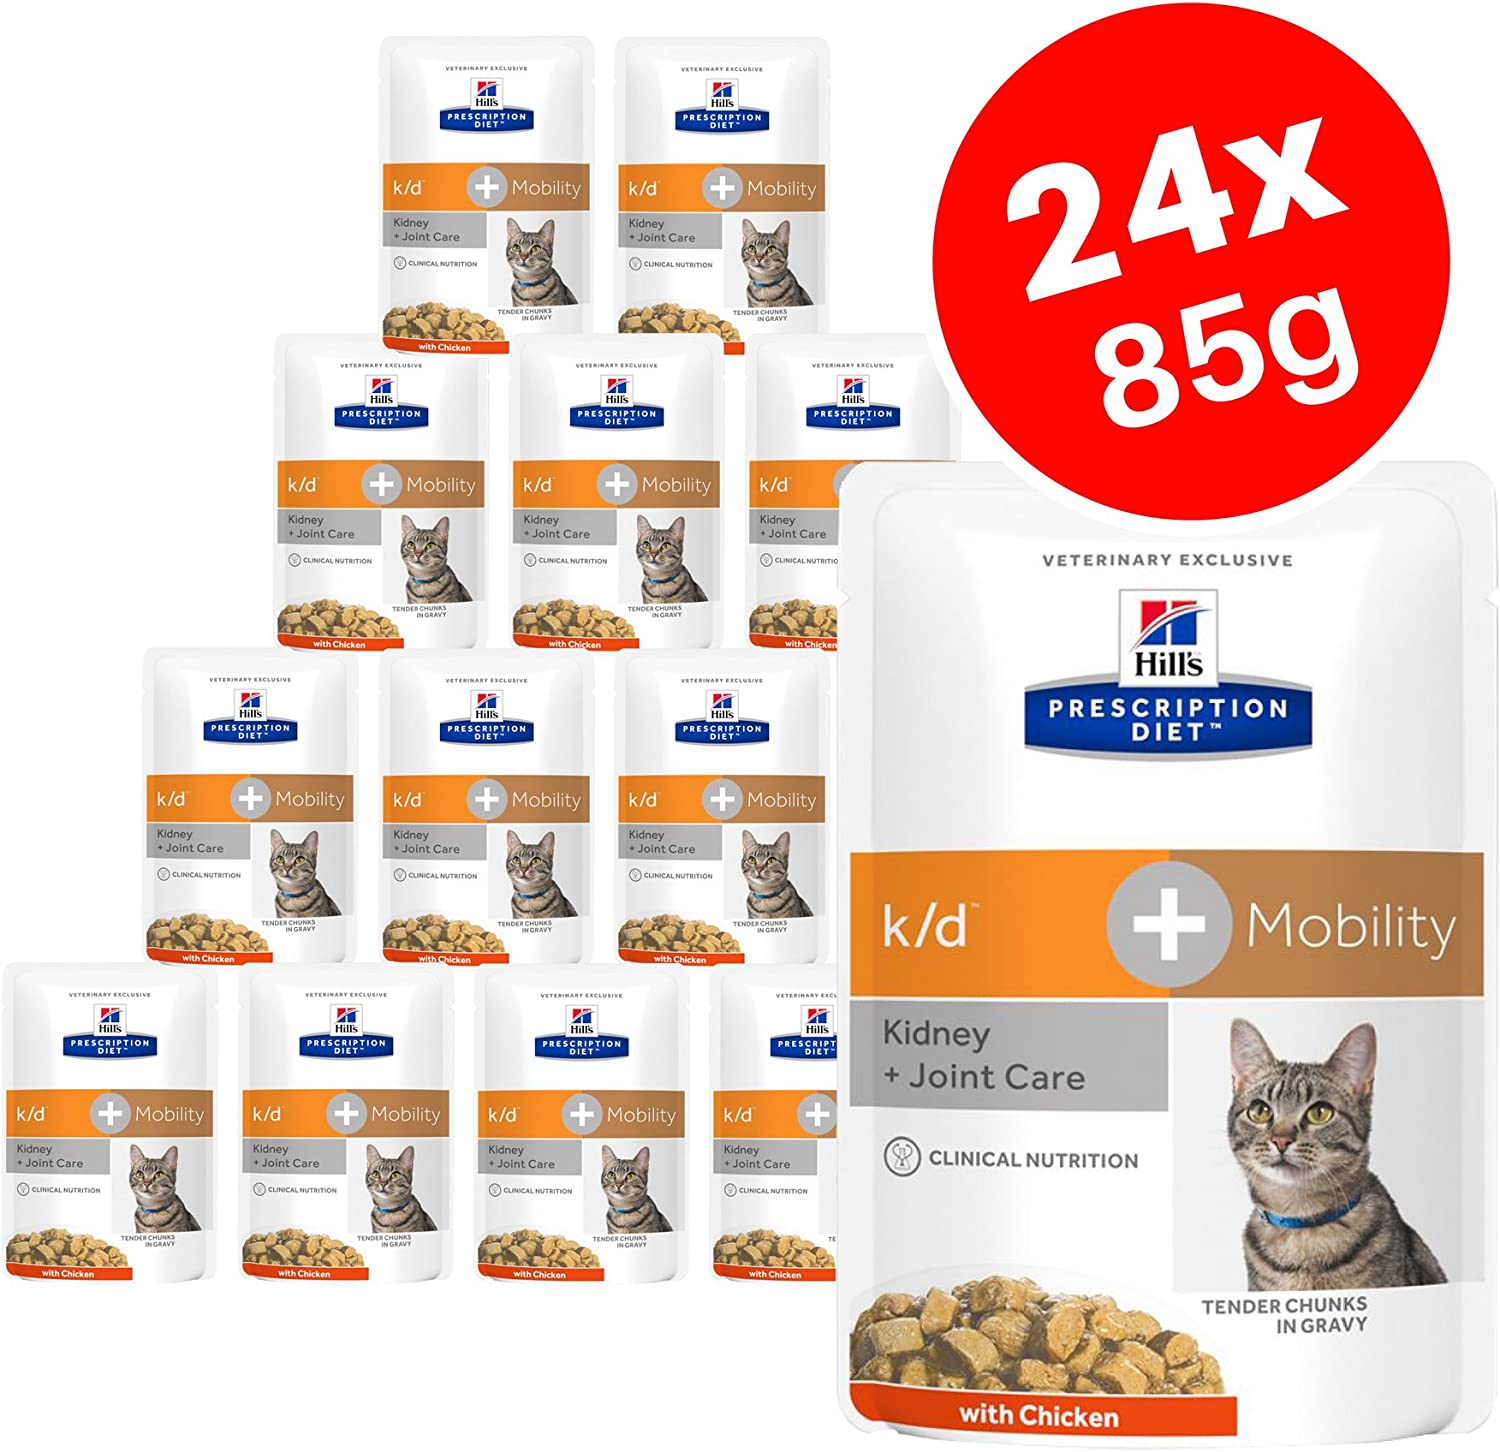 Hills Prescription Diet k/d + Movilidad Adulto Gato Alimento con Pollo, Kidney + Cuidado de Juntas 12 x 85 g (Pack de 2)